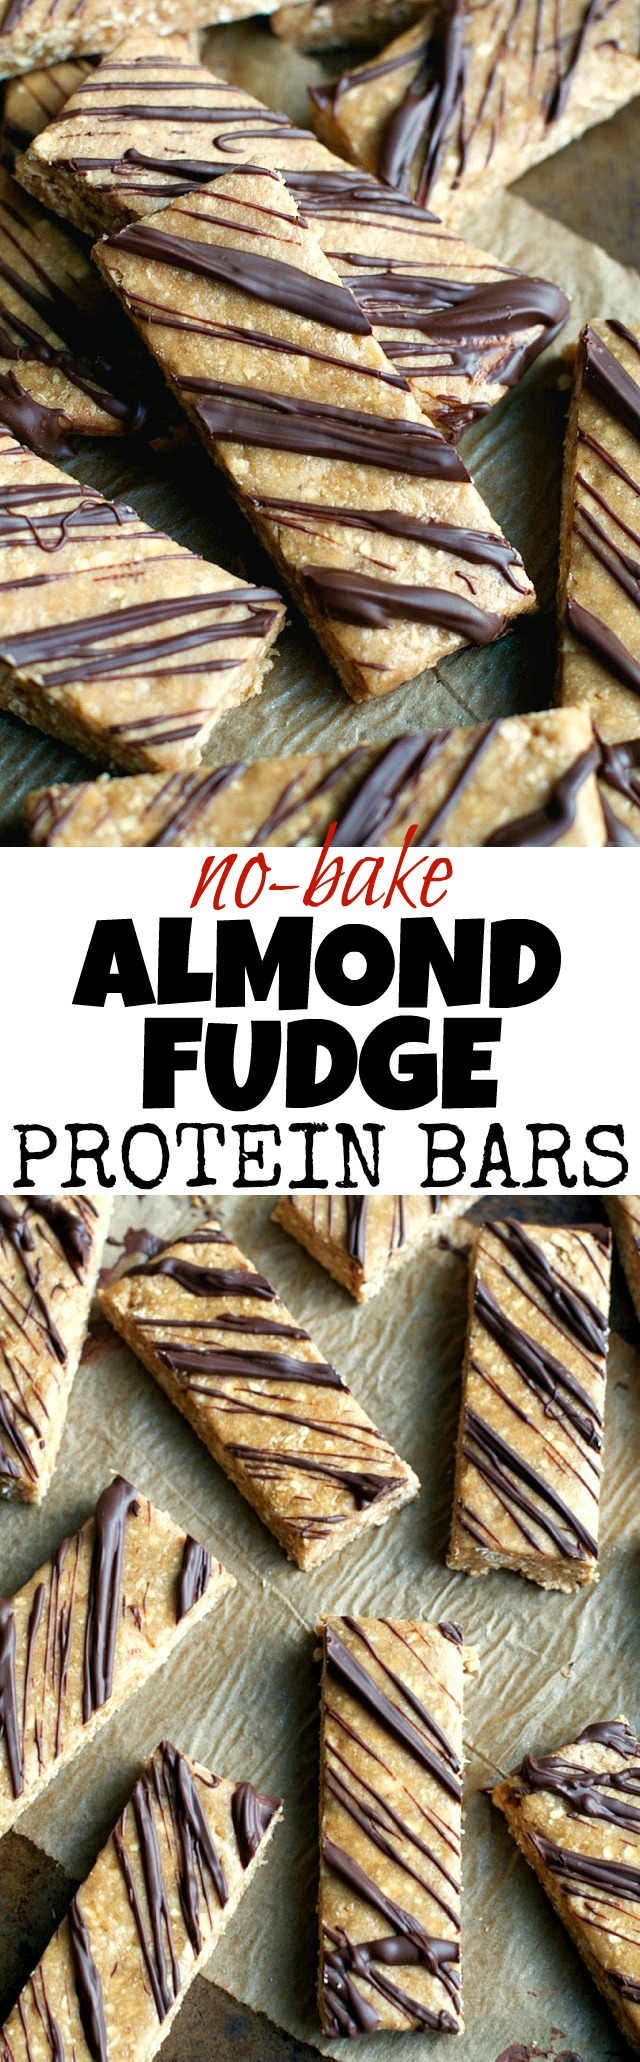 Give store-bought protein bars a run for their money with these soft and fudgy No Bake Almond Fudge Protein Bars! They're gluten-free, refined-sugar-free, vegan, and make a delicious healthy snack! | runningwithspoons.com #healthy #snack #recipe